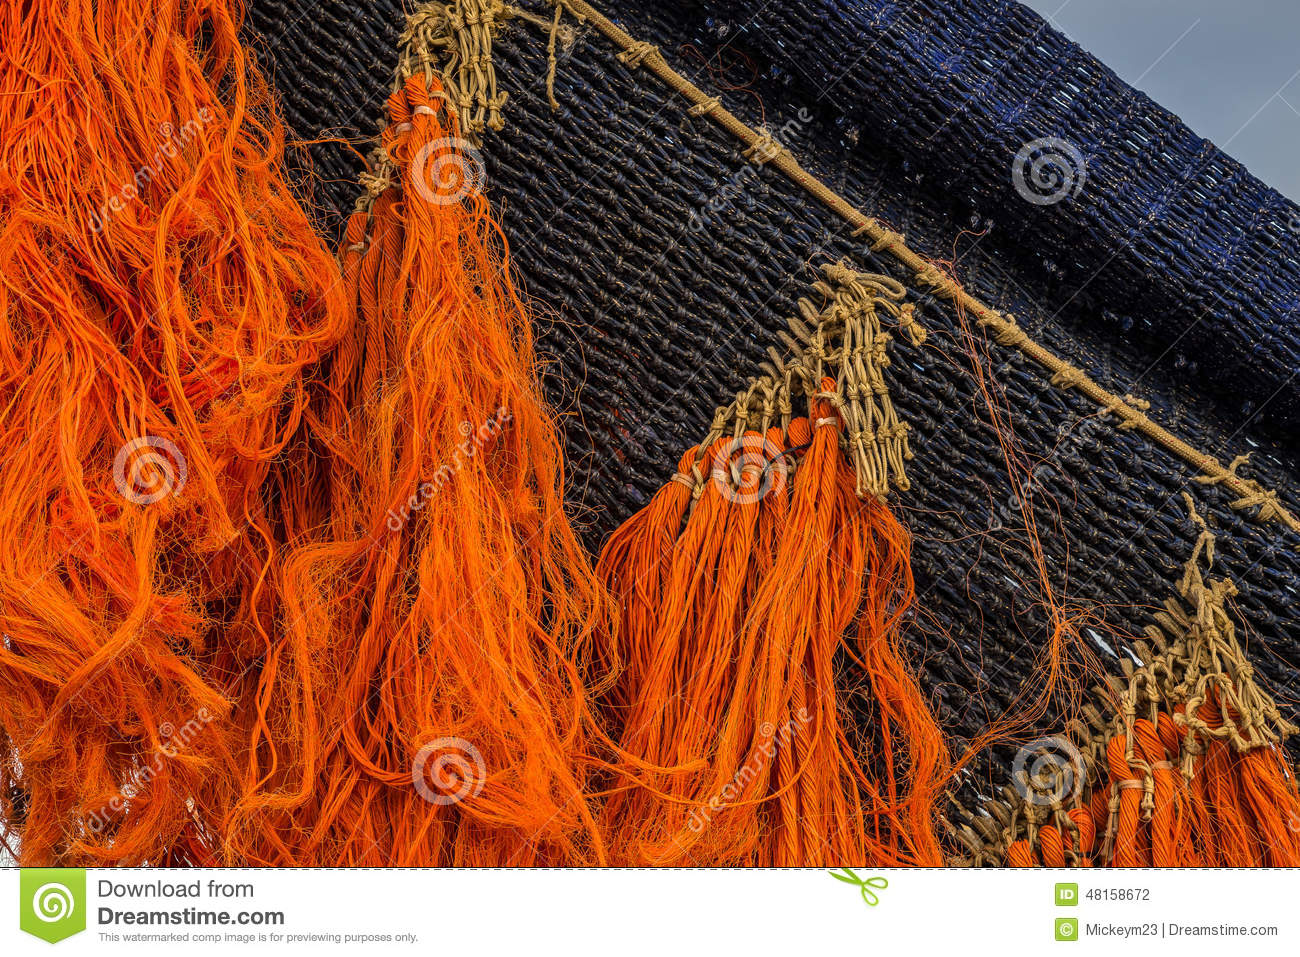 Colored fishing net stock photo. Image of netting, string - 48158672